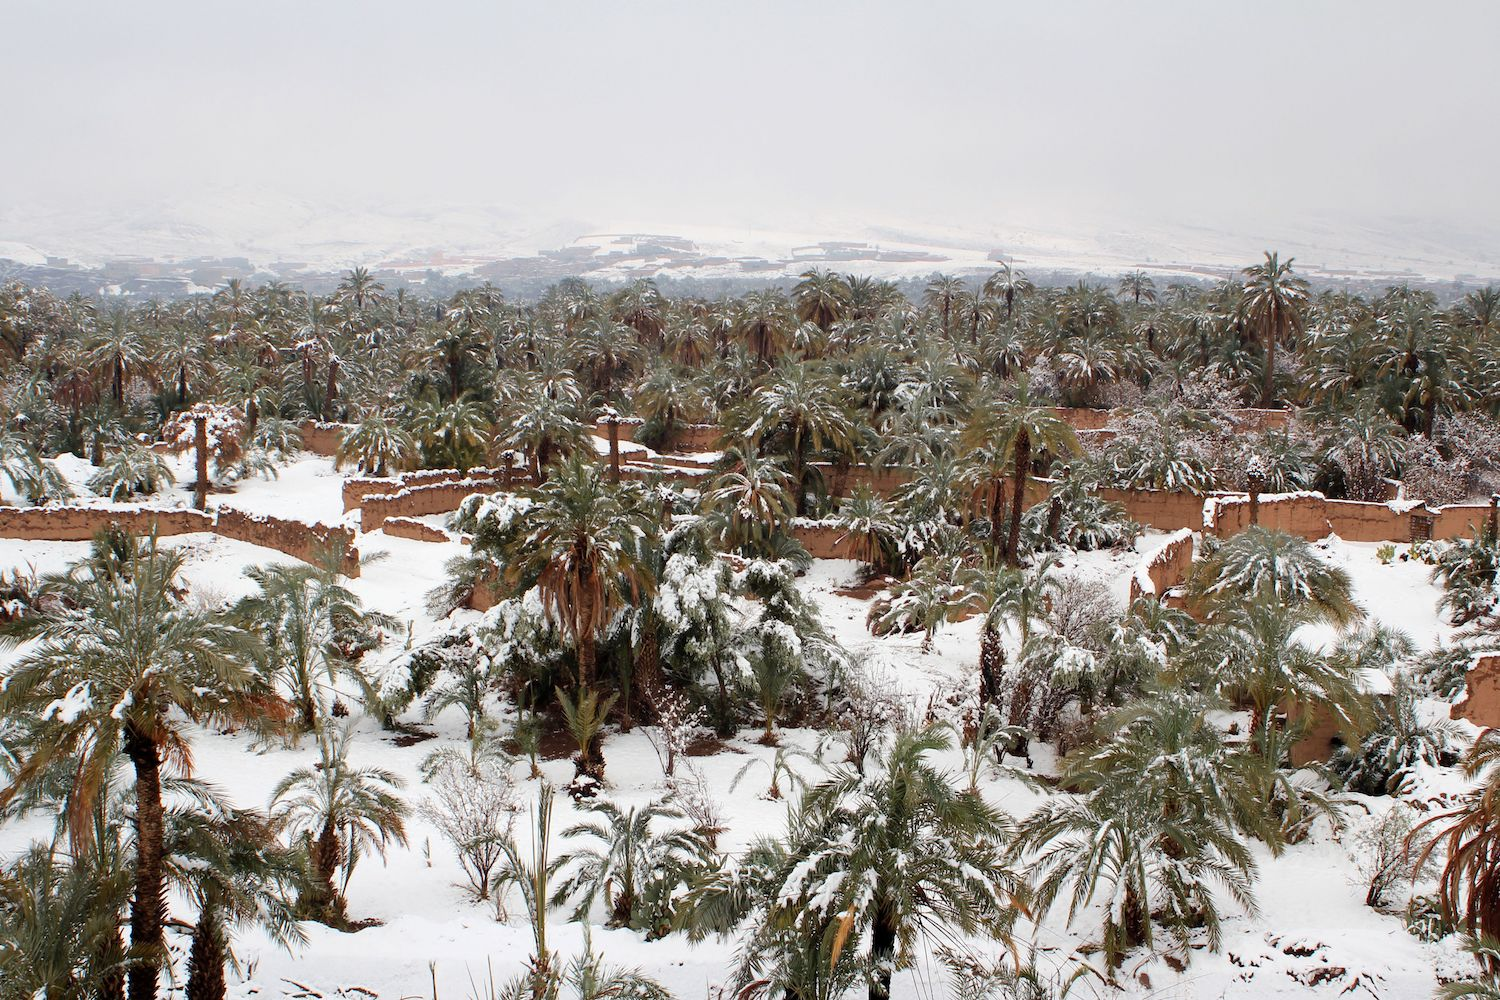 TOPSHOT - A picture taken on January 29, 2018 shows a palm grove covered in snow in the southern Moroccan town of Zagora. Snow on the sand dunes: the cities of Zagora and Ouarzazate, at the doors of the Moroccan desert, were covered with snow, an unusual phenomenon due to a cold snap from northern Europe. / AFP PHOTO / STR        (Photo credit should read STR/AFP/Getty Images)